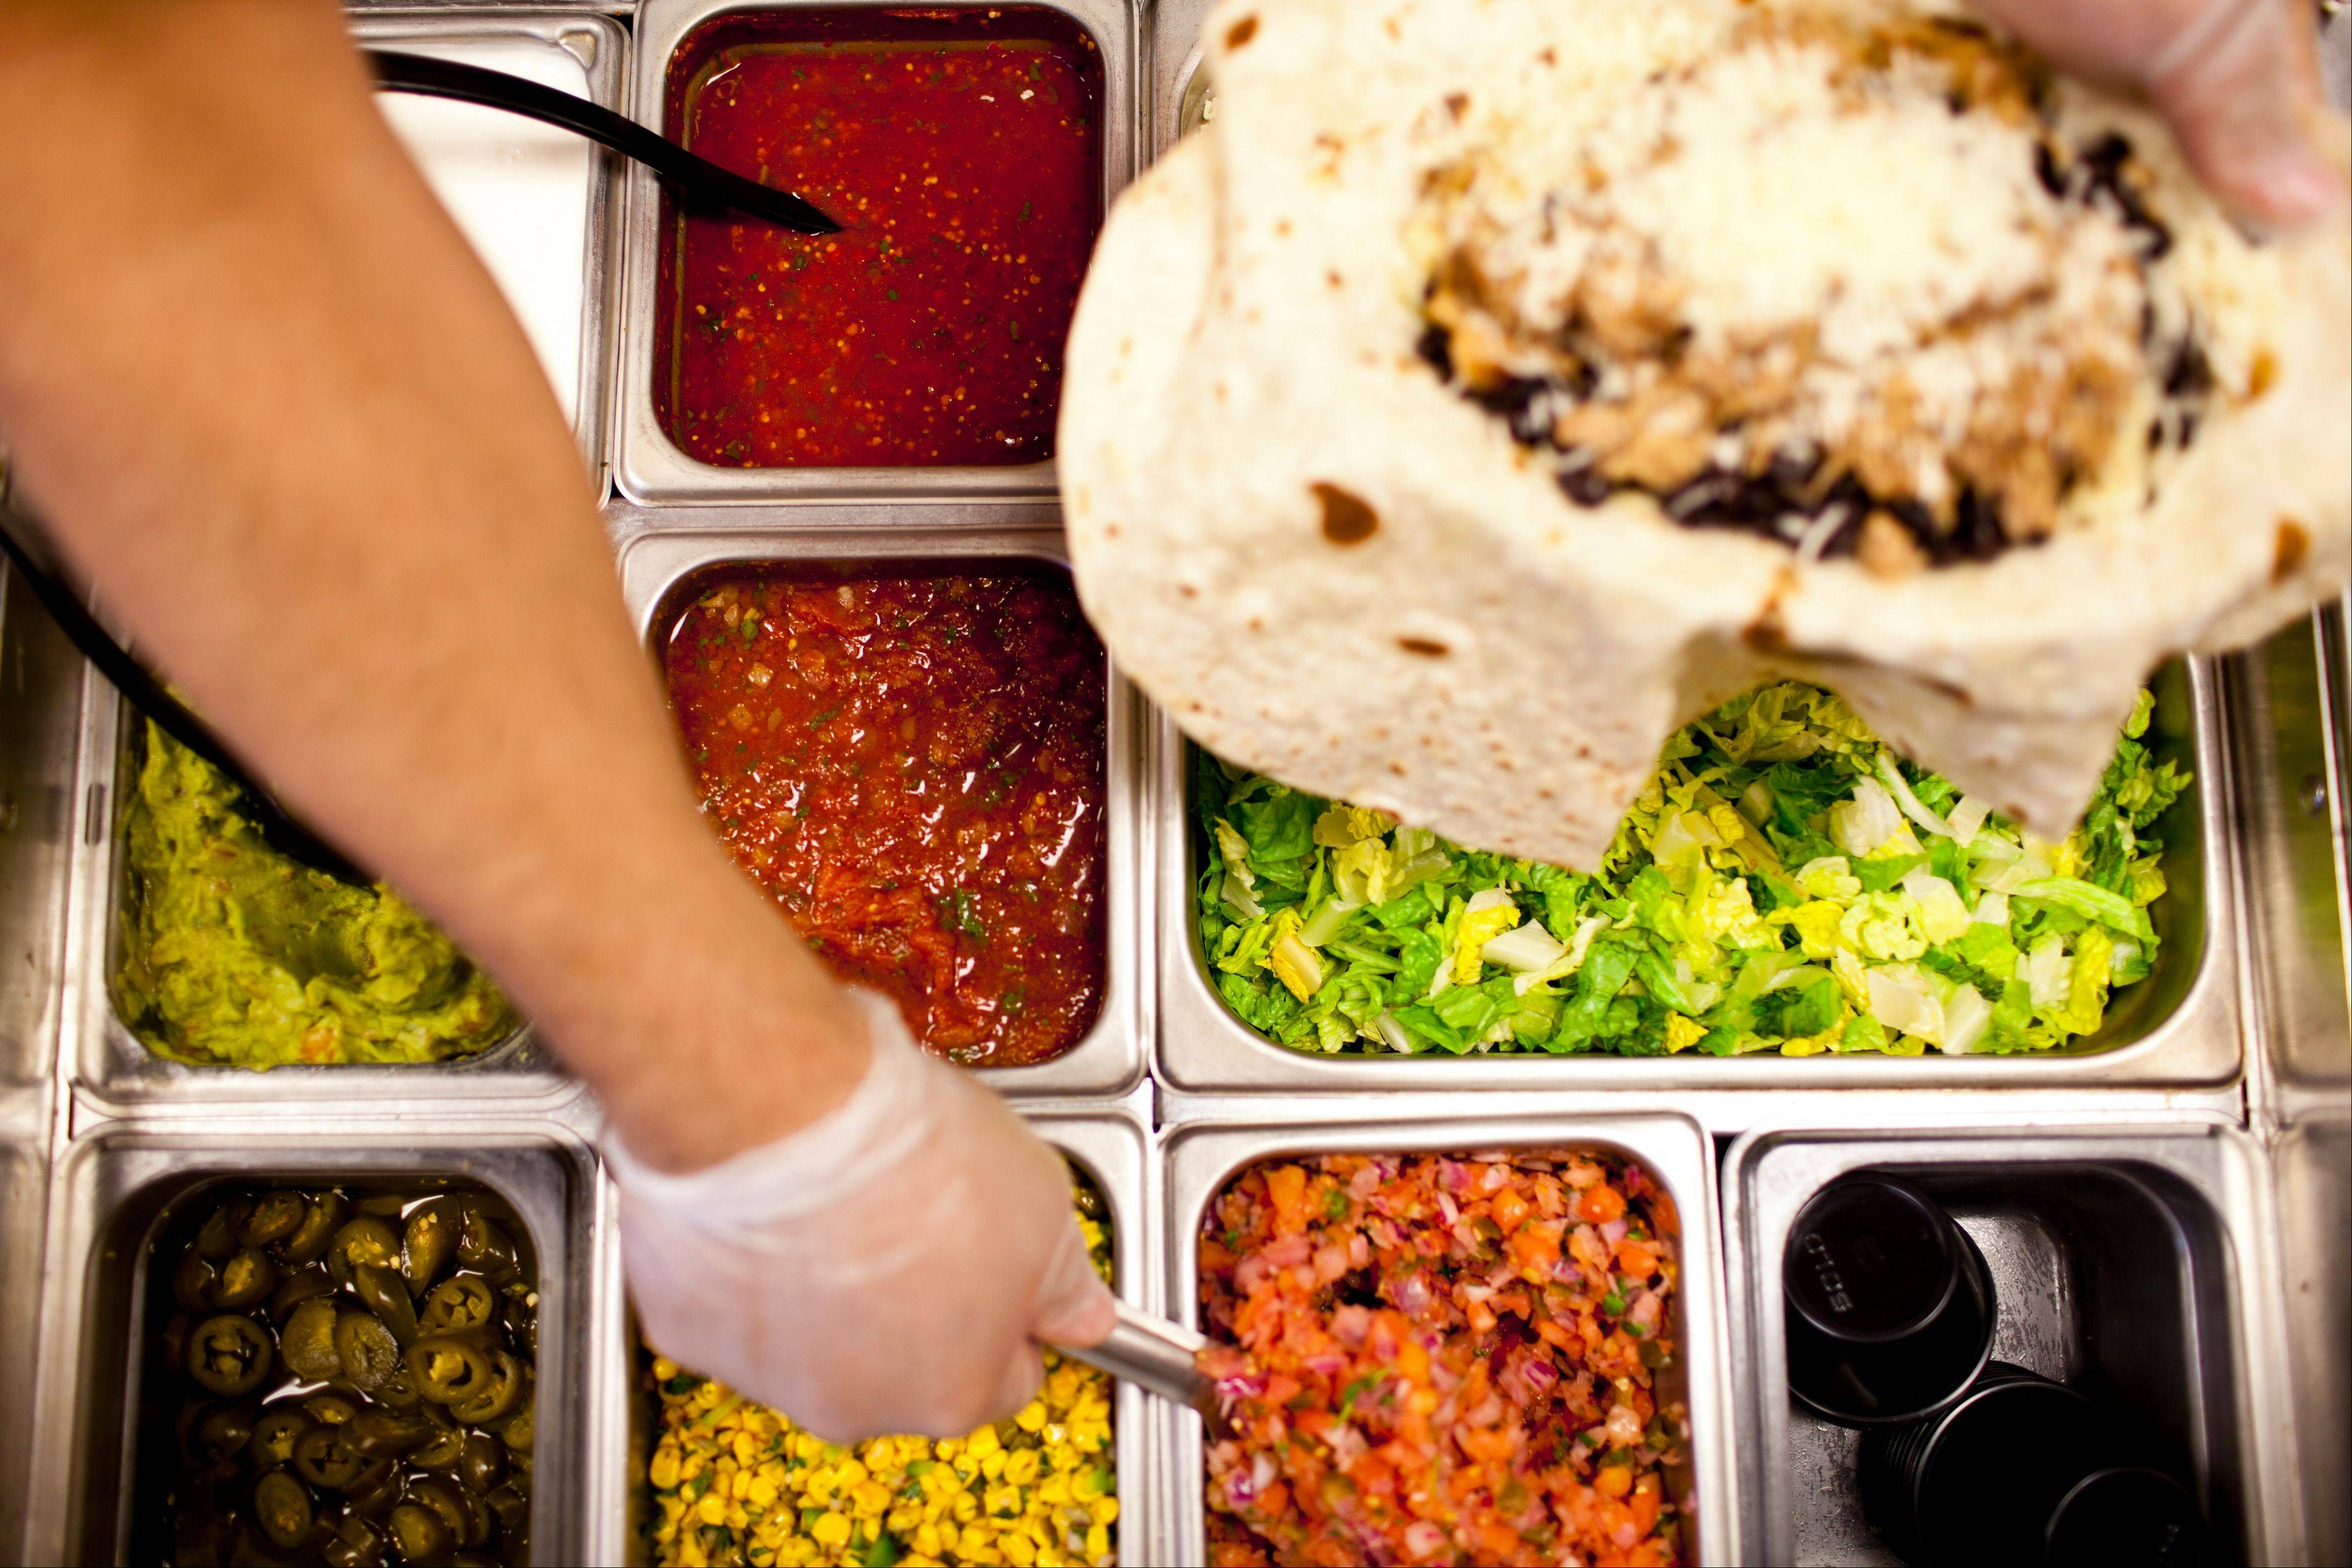 The salsa line includes several zesty flavors to spicy up your order.